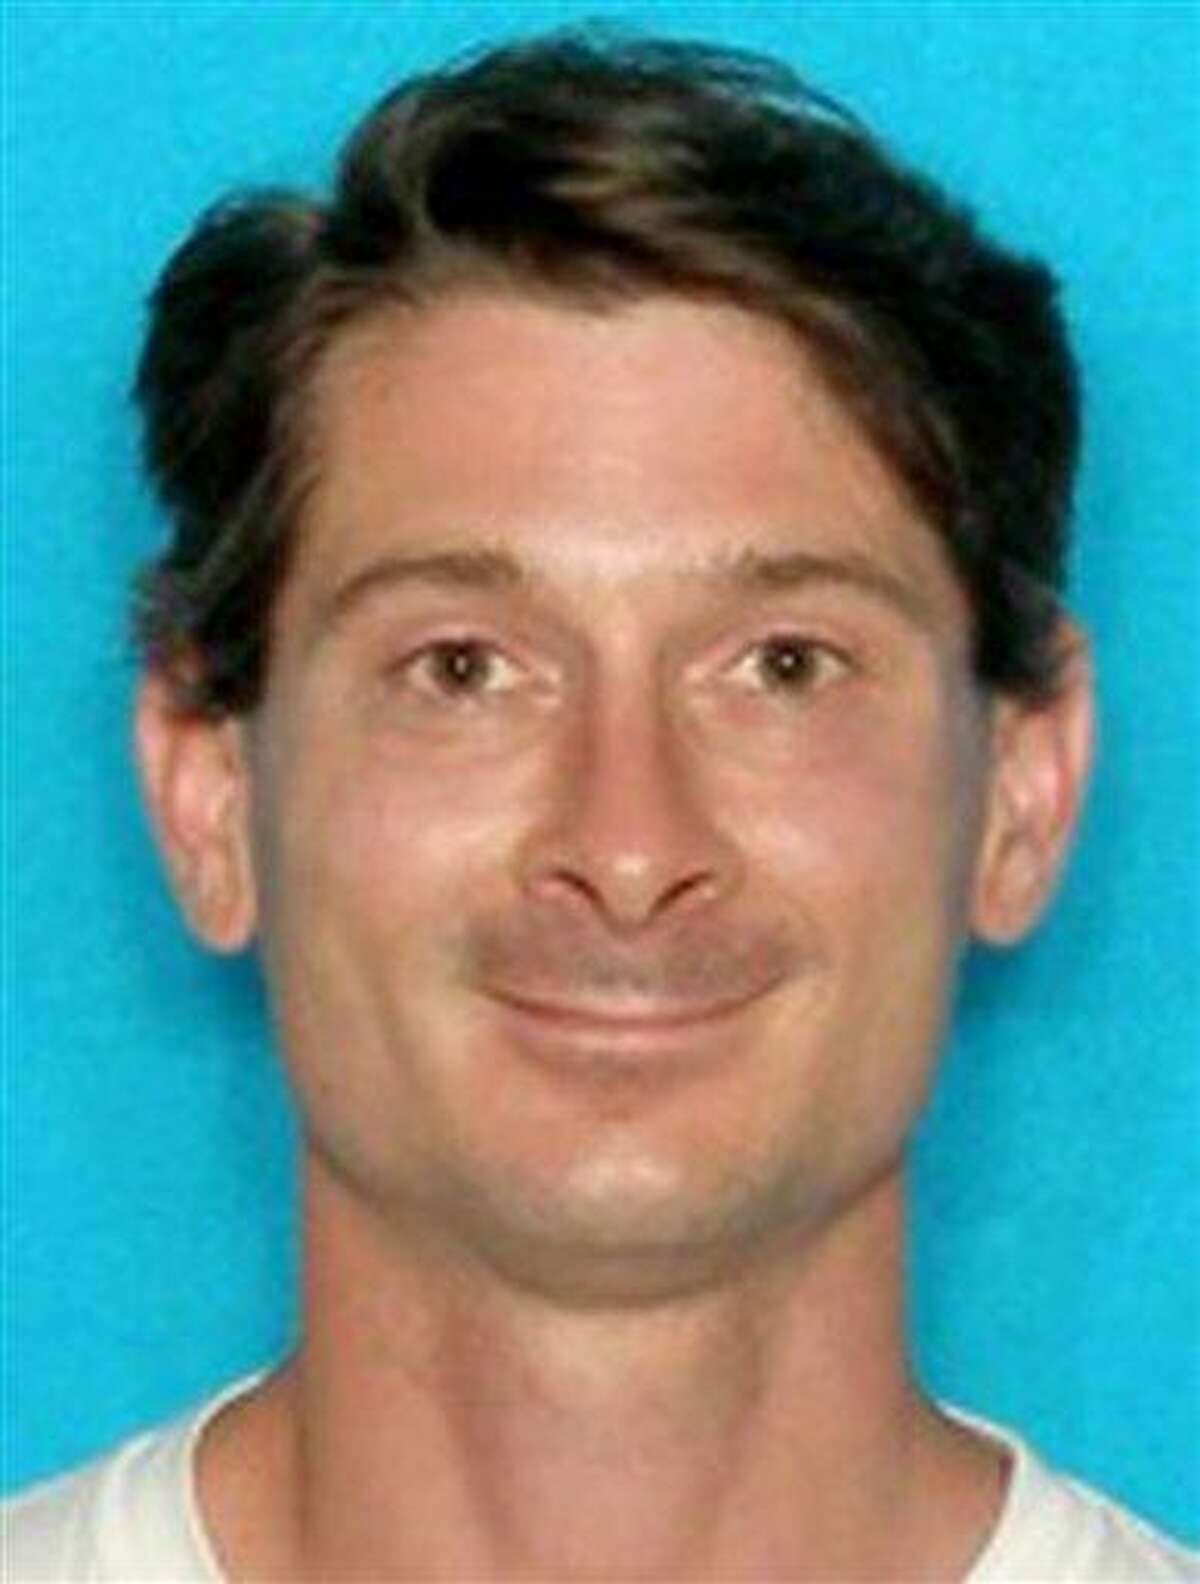 This undated photo provided by the City of College Station, Texas shows Thomas Caffall. Caffall, 35, has been identified by authorities as the shooter who opened fire from inside his home in College Station as he was being served an eviction notice, killing Brazos County constable Brian Bachmann and another man on Monday. Associated Press